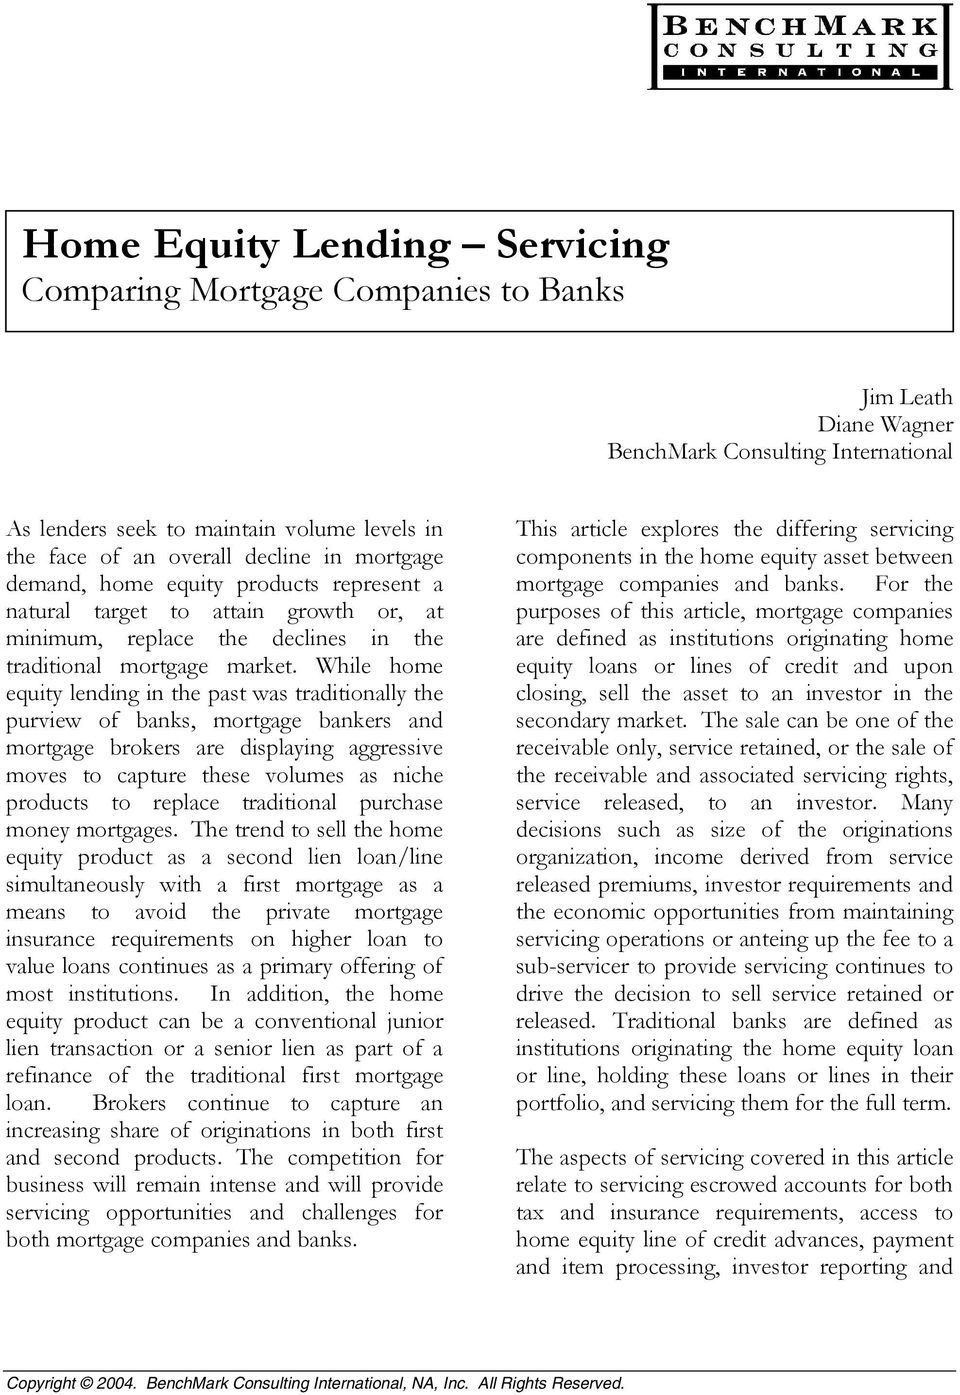 While home equity lending in the past was traditionally the purview of banks, mortgage bankers and mortgage brokers are displaying aggressive moves to capture these volumes as niche products to